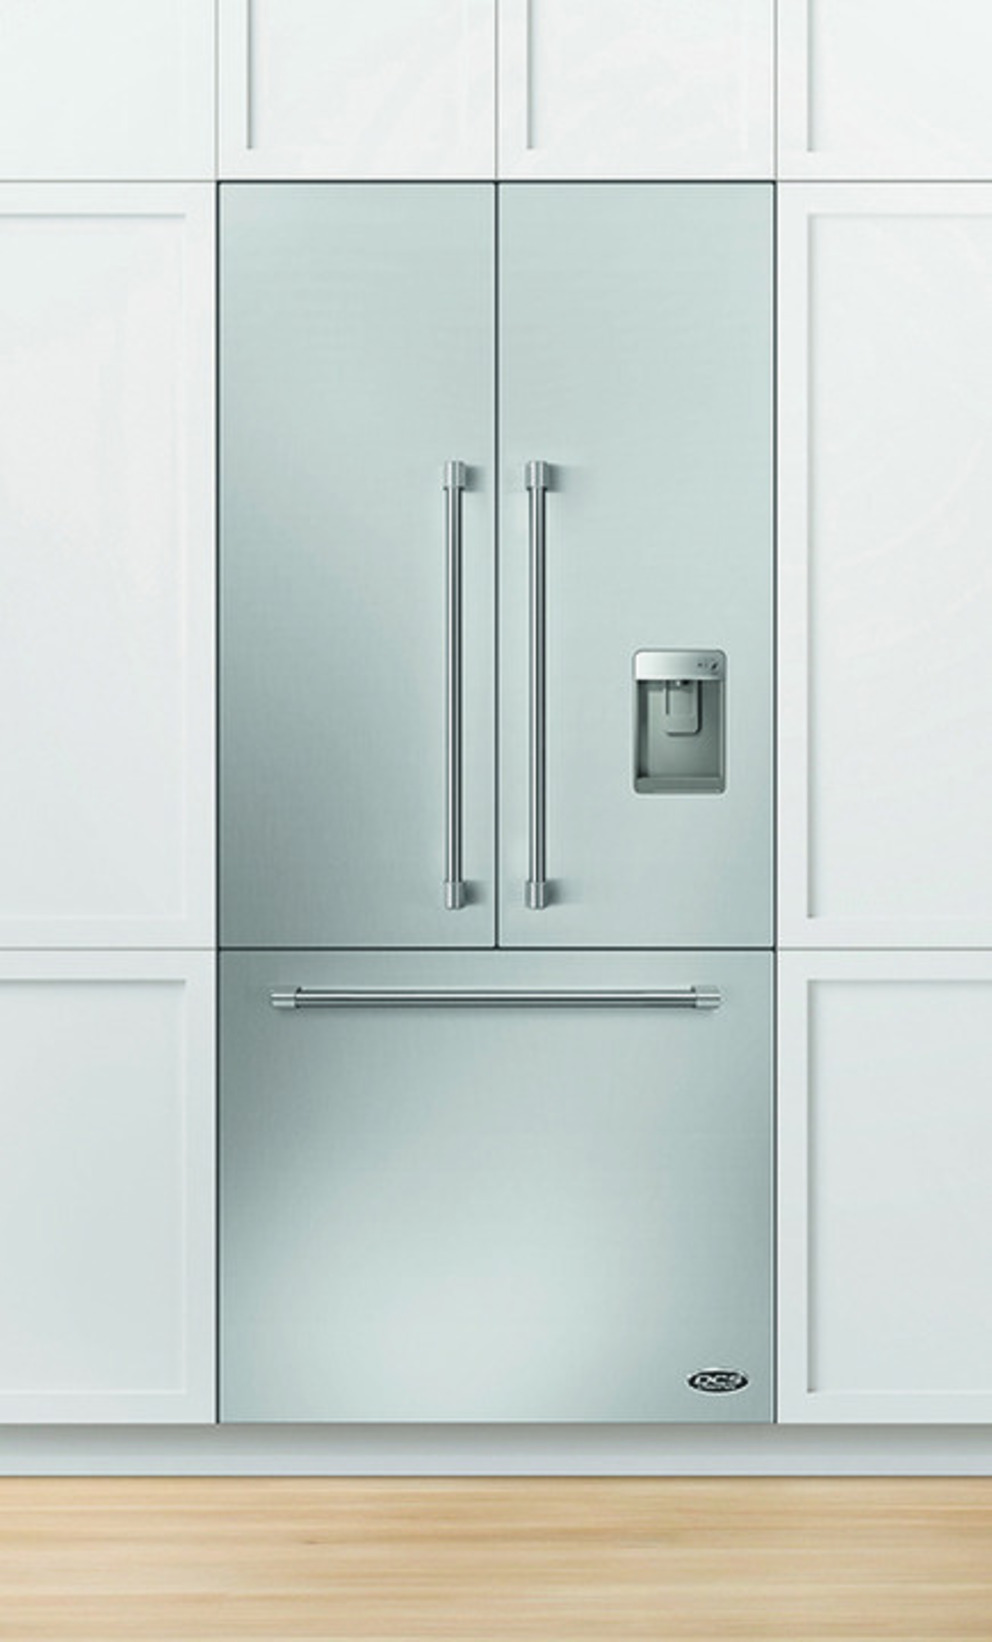 Fridges DCS RS36A80UC1 + RD3684CU (84'' DCS)